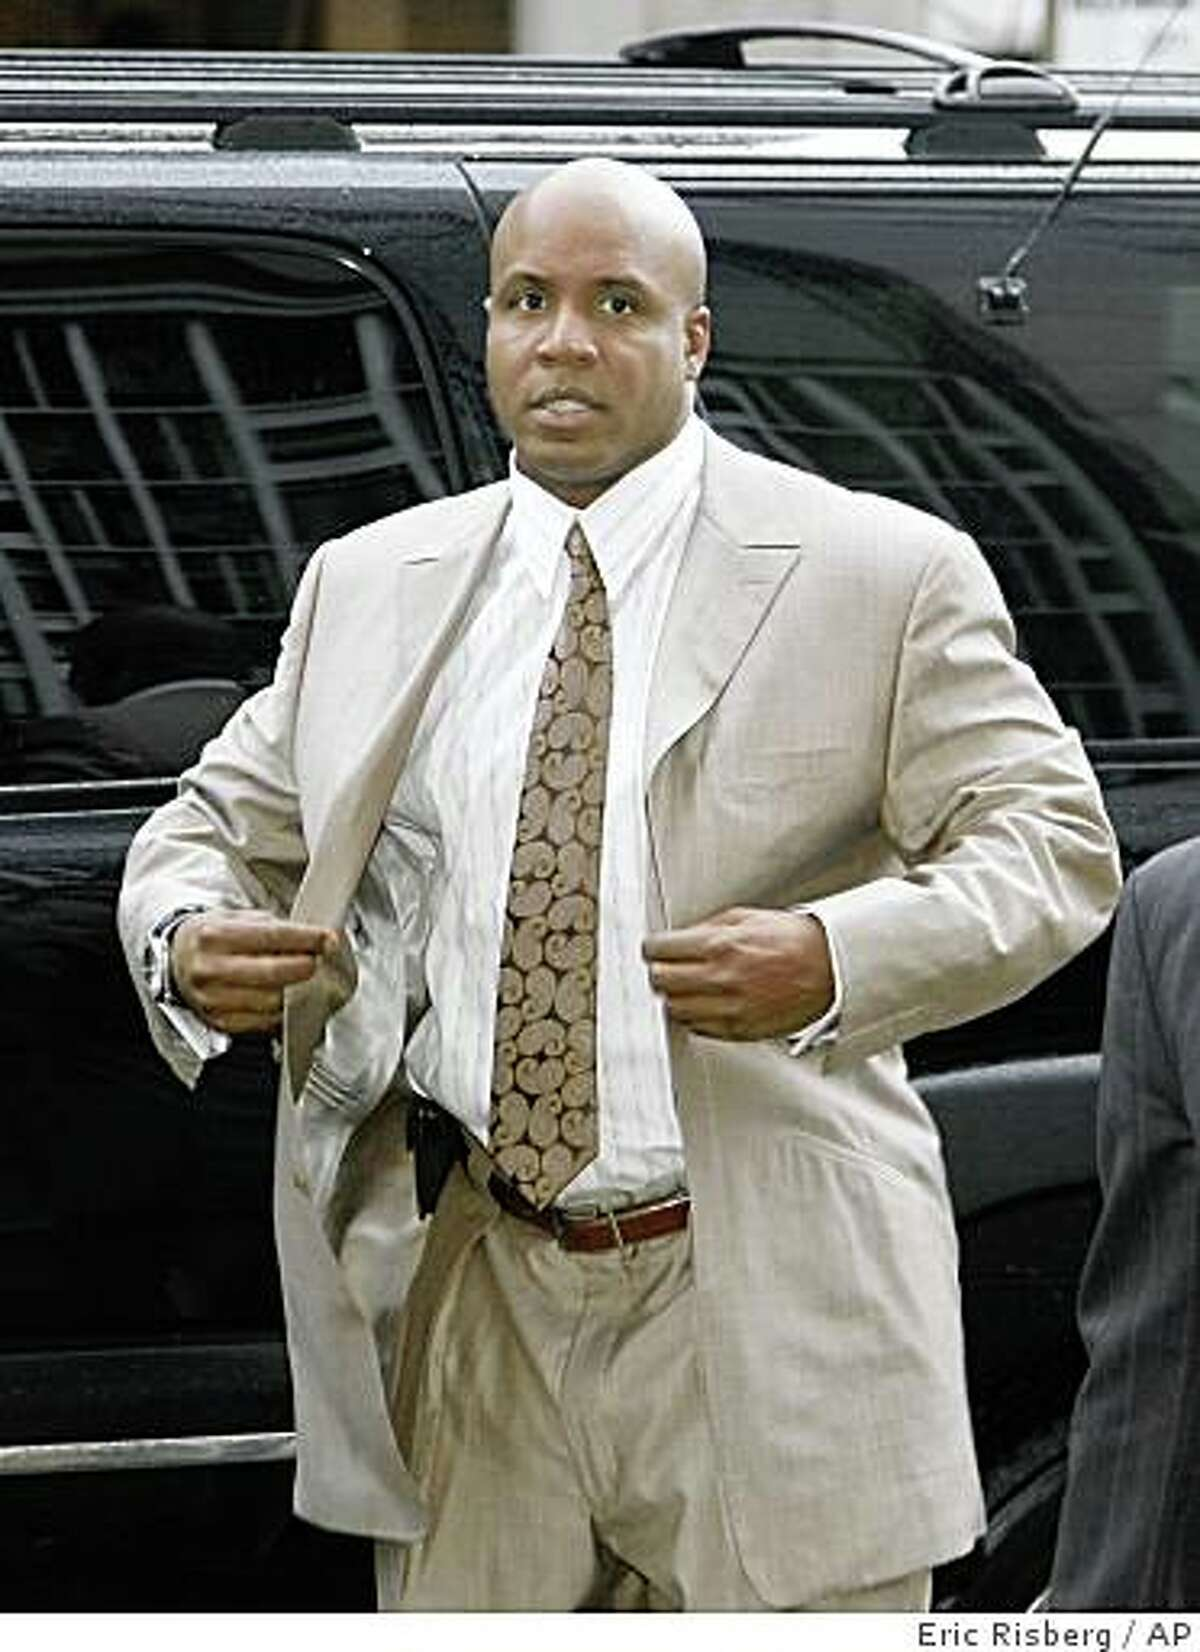 Barry Bonds buttons his jacket after arriving to enter a plea at the Federal building in San Francisco, Thursday, Feb. 5, 2009. Bonds' trial for perjury and obstruction of justice charges begins next month.